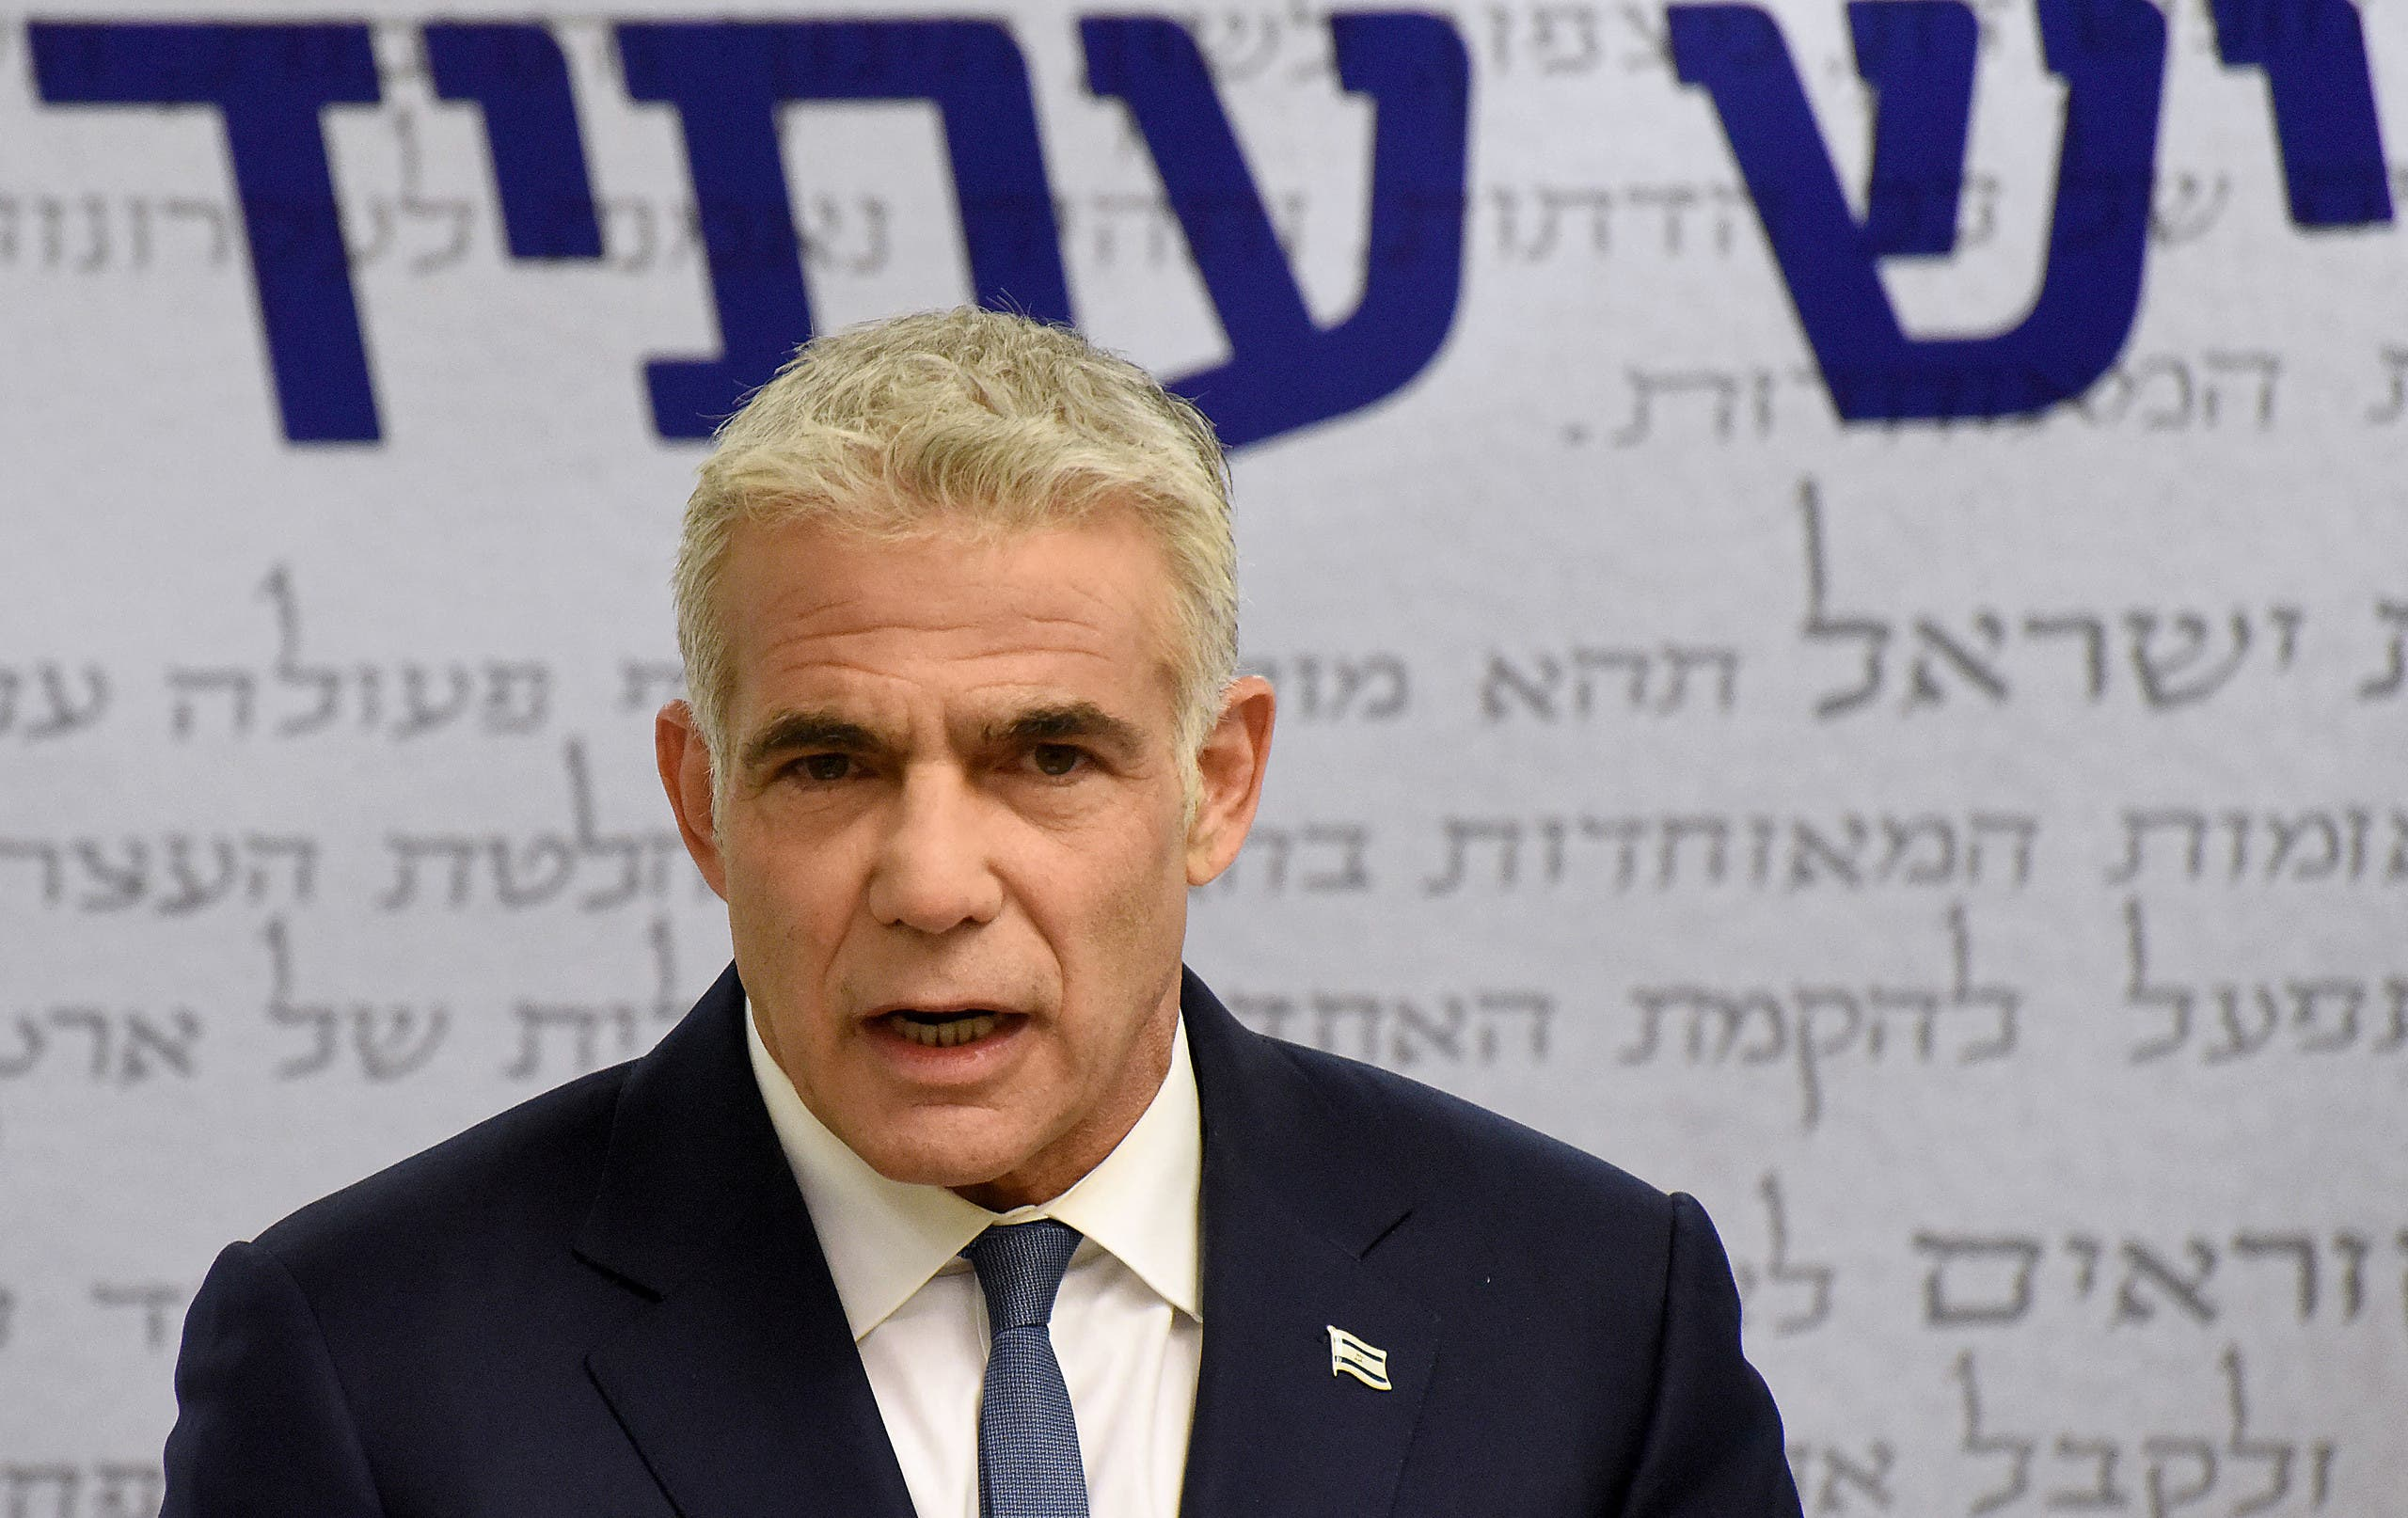 In order to overthrow Netanyahu, Yair Lapid resigns die Formation of a government coalition